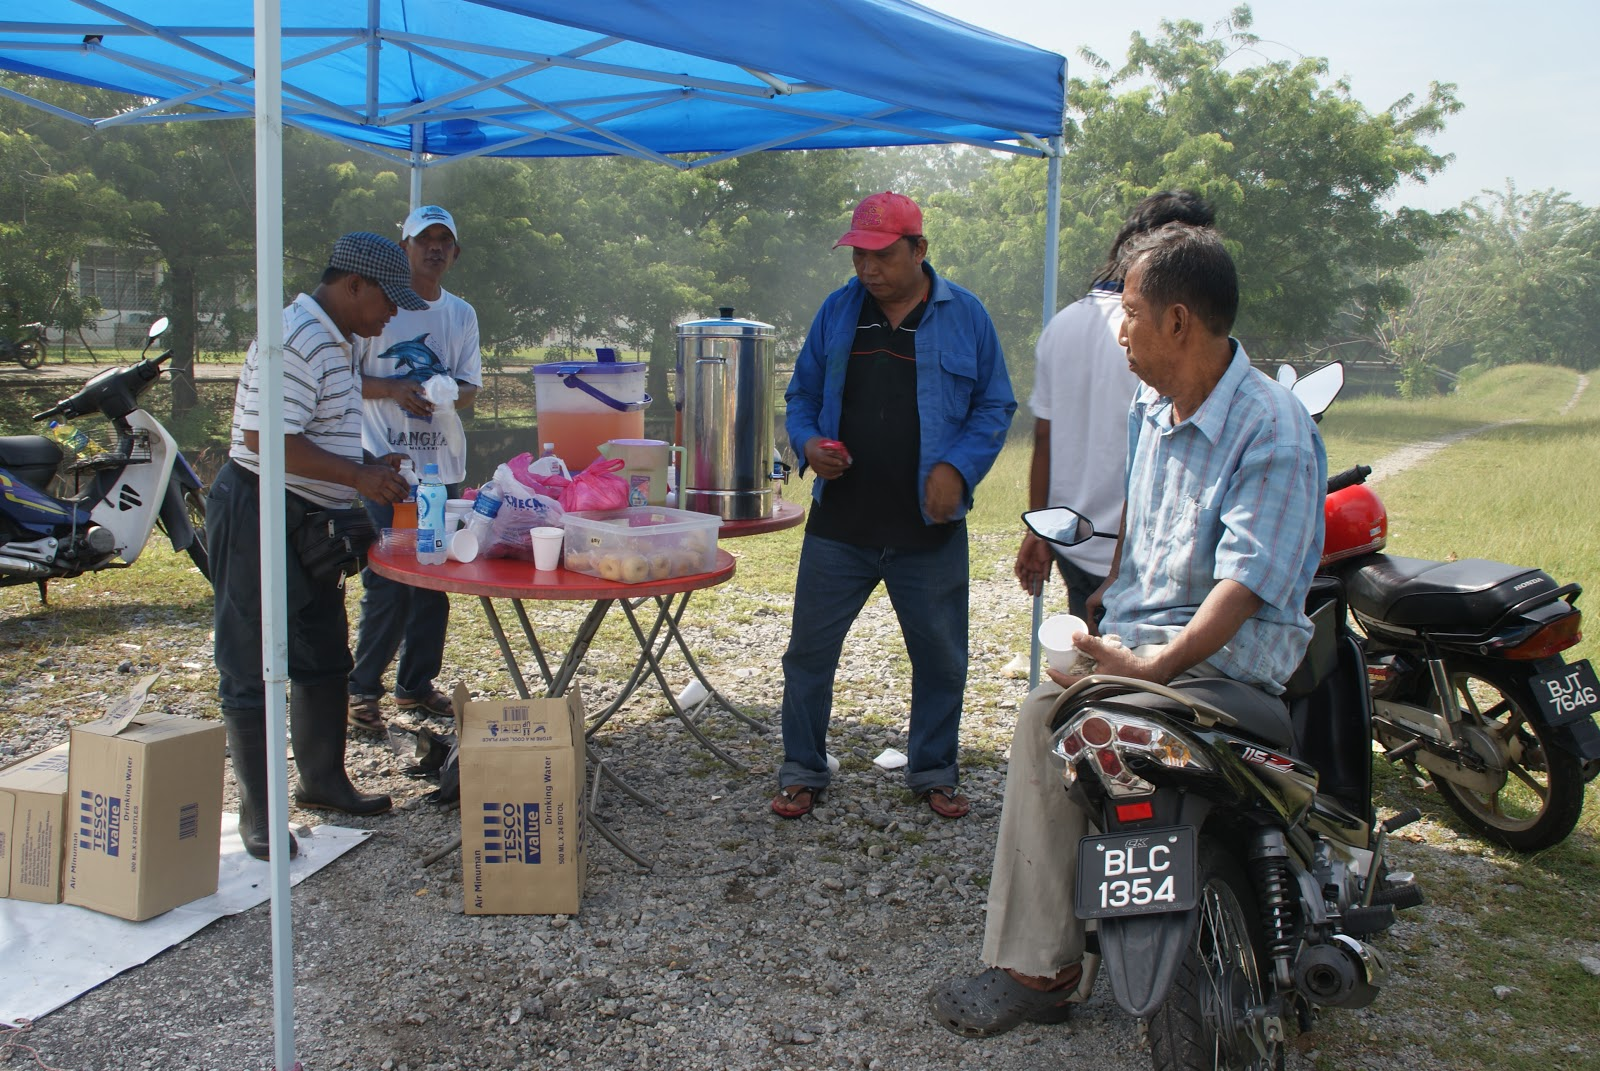 a gotong royong activity On 29th october 2015, there were 30 representatives of dengue rangers had collaborated in gotong royong activity at flat desa ria, tangga batu, melaka the flash mob show had been done as it was part of the warming up session before the gotong royong started.